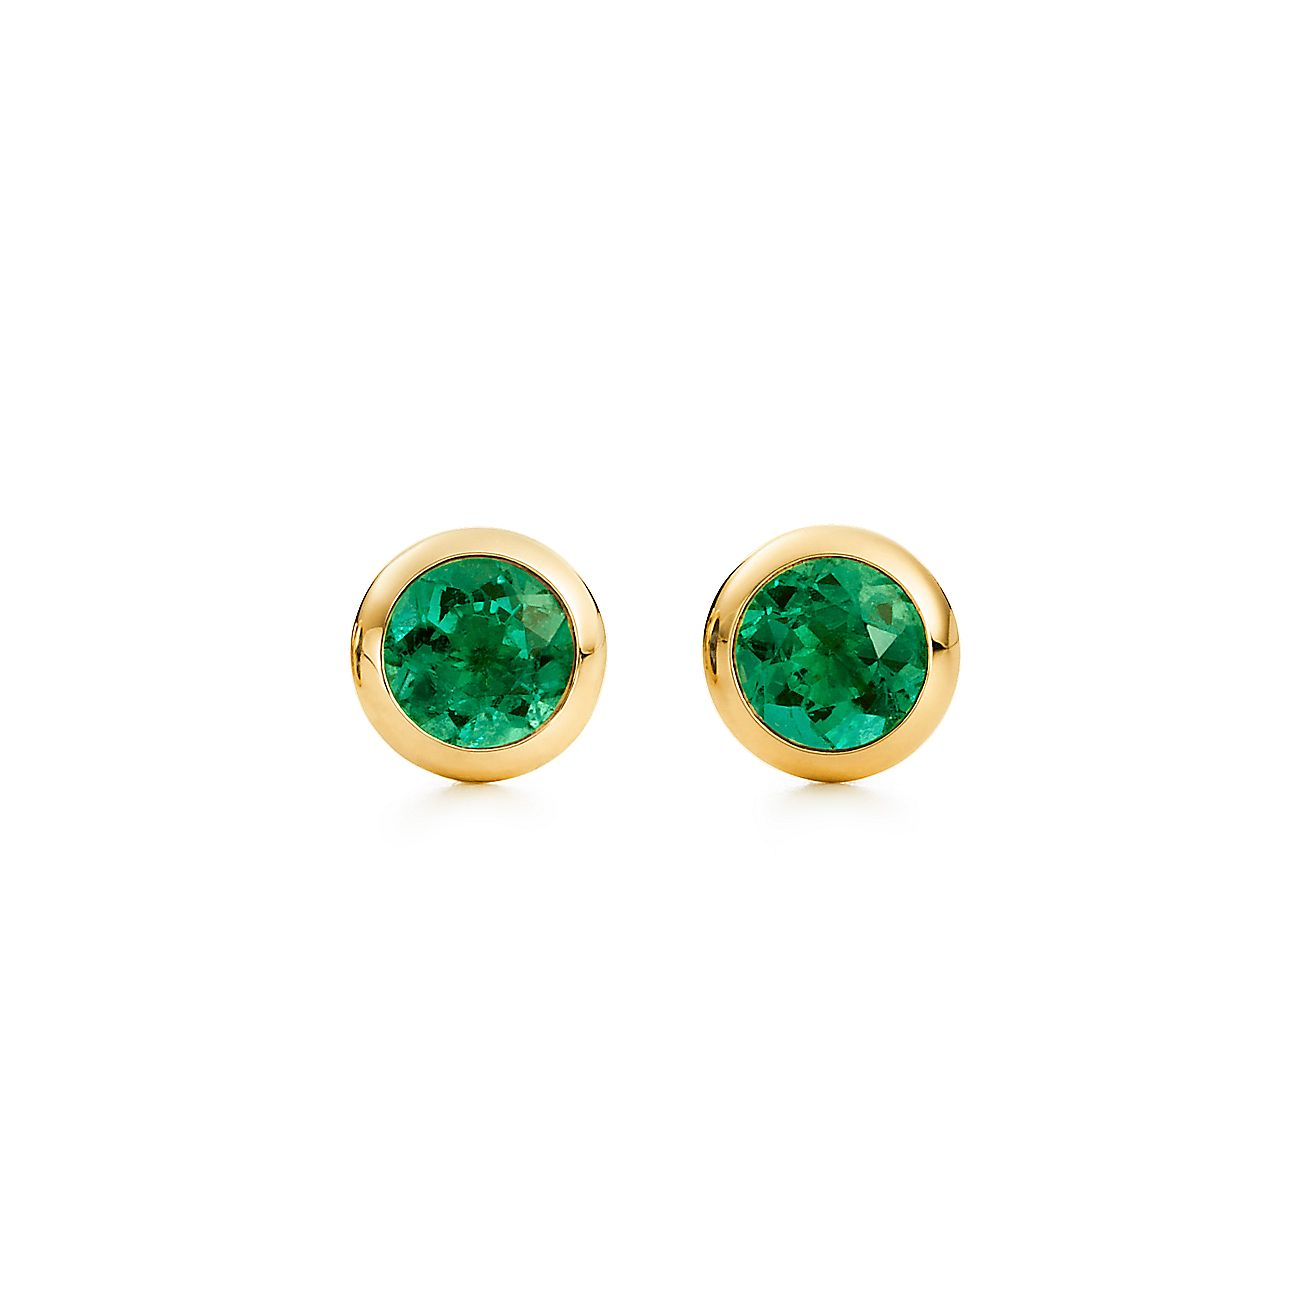 Elsa Peretti Color By The Yard Earrings In 18k Gold With Emeralds Tiffany Co